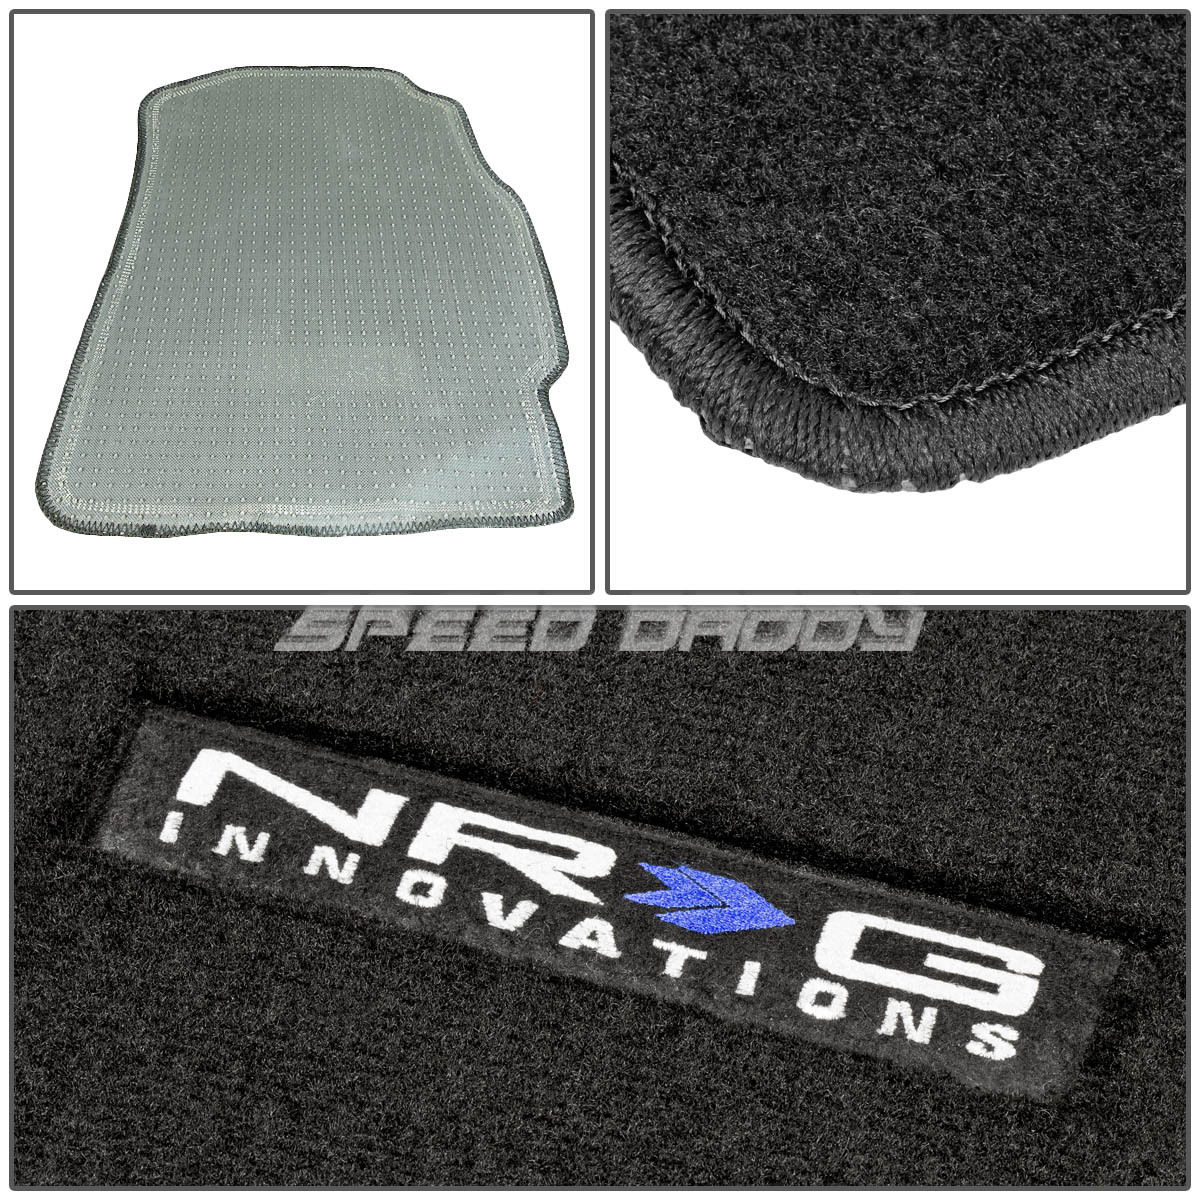 Acura Rsx Floor Mats Acura Rsx Red Stitches Black Floor - Acura rsx floor mats